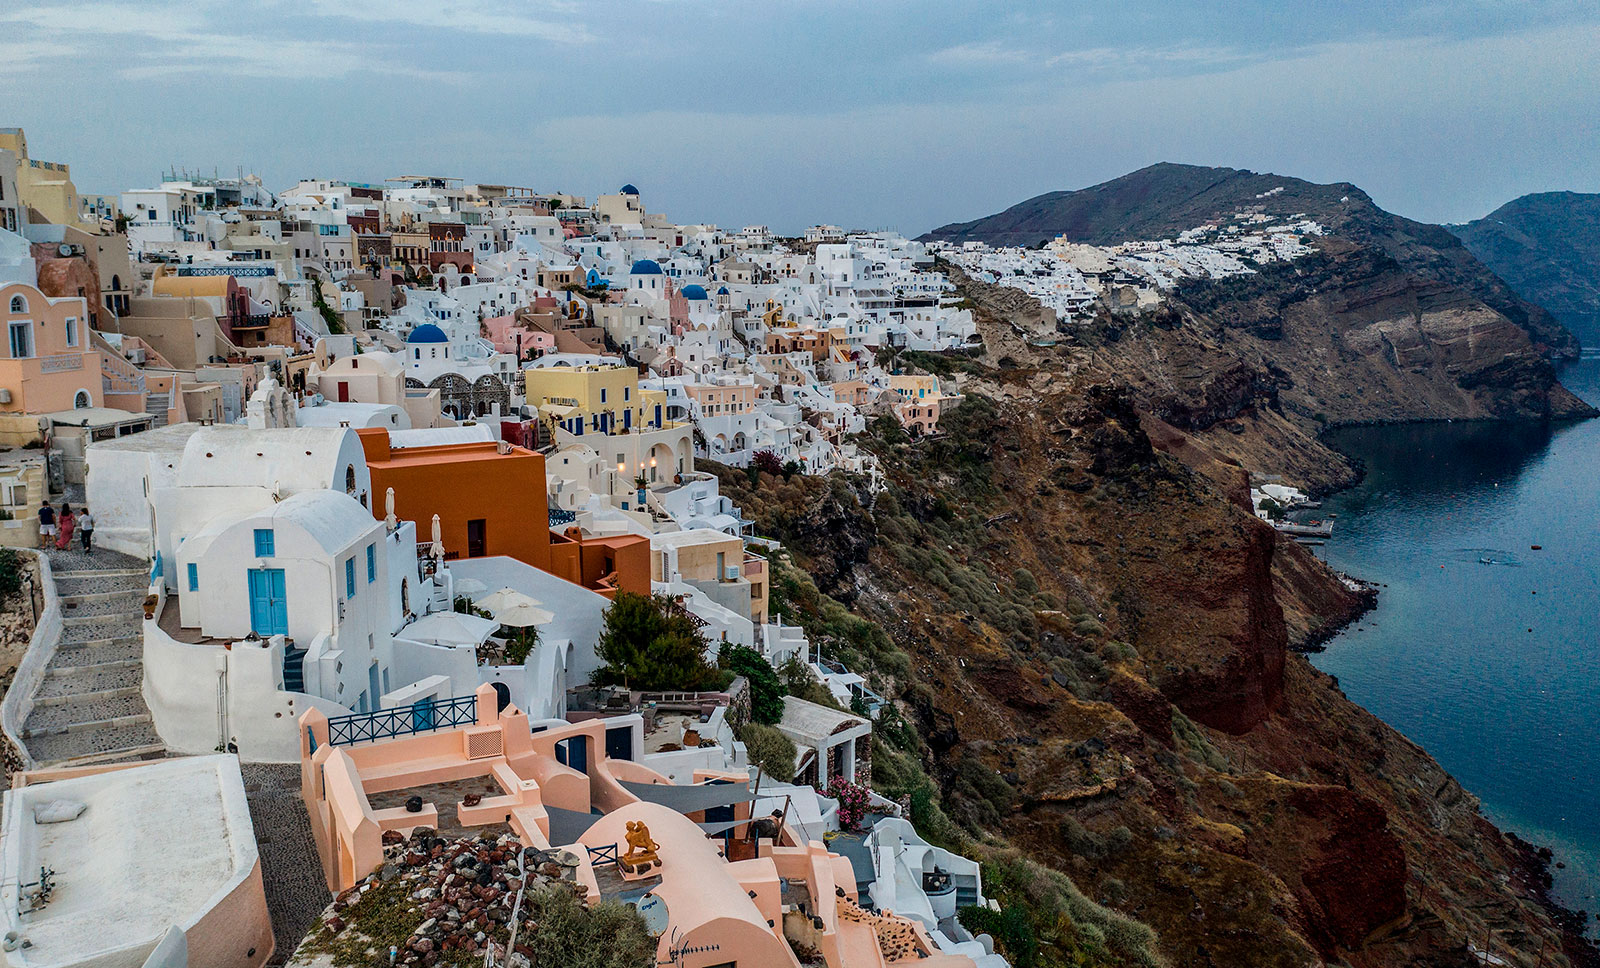 The village of Oia on the northwestern tip of the Greek island of Santorini on May 20. Greek Foreign Minister Nikos Dendias said that the gradual easing of restrictions should be completed by the end of June and expressed hope that Italians would choose Greece as their holiday destination.